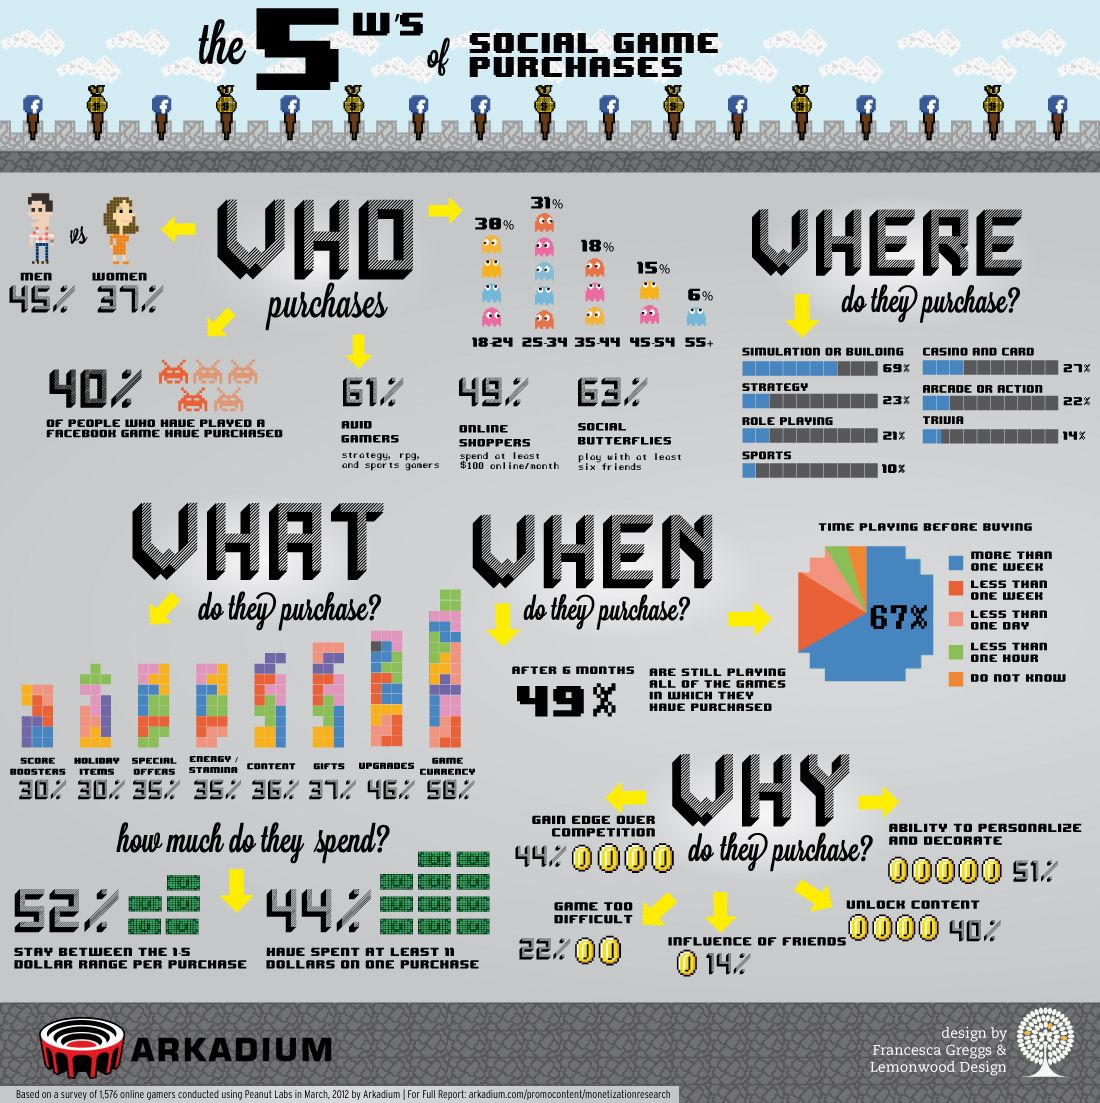 (INFOGRAPHIC) The 5 W's of Social Game Purchases